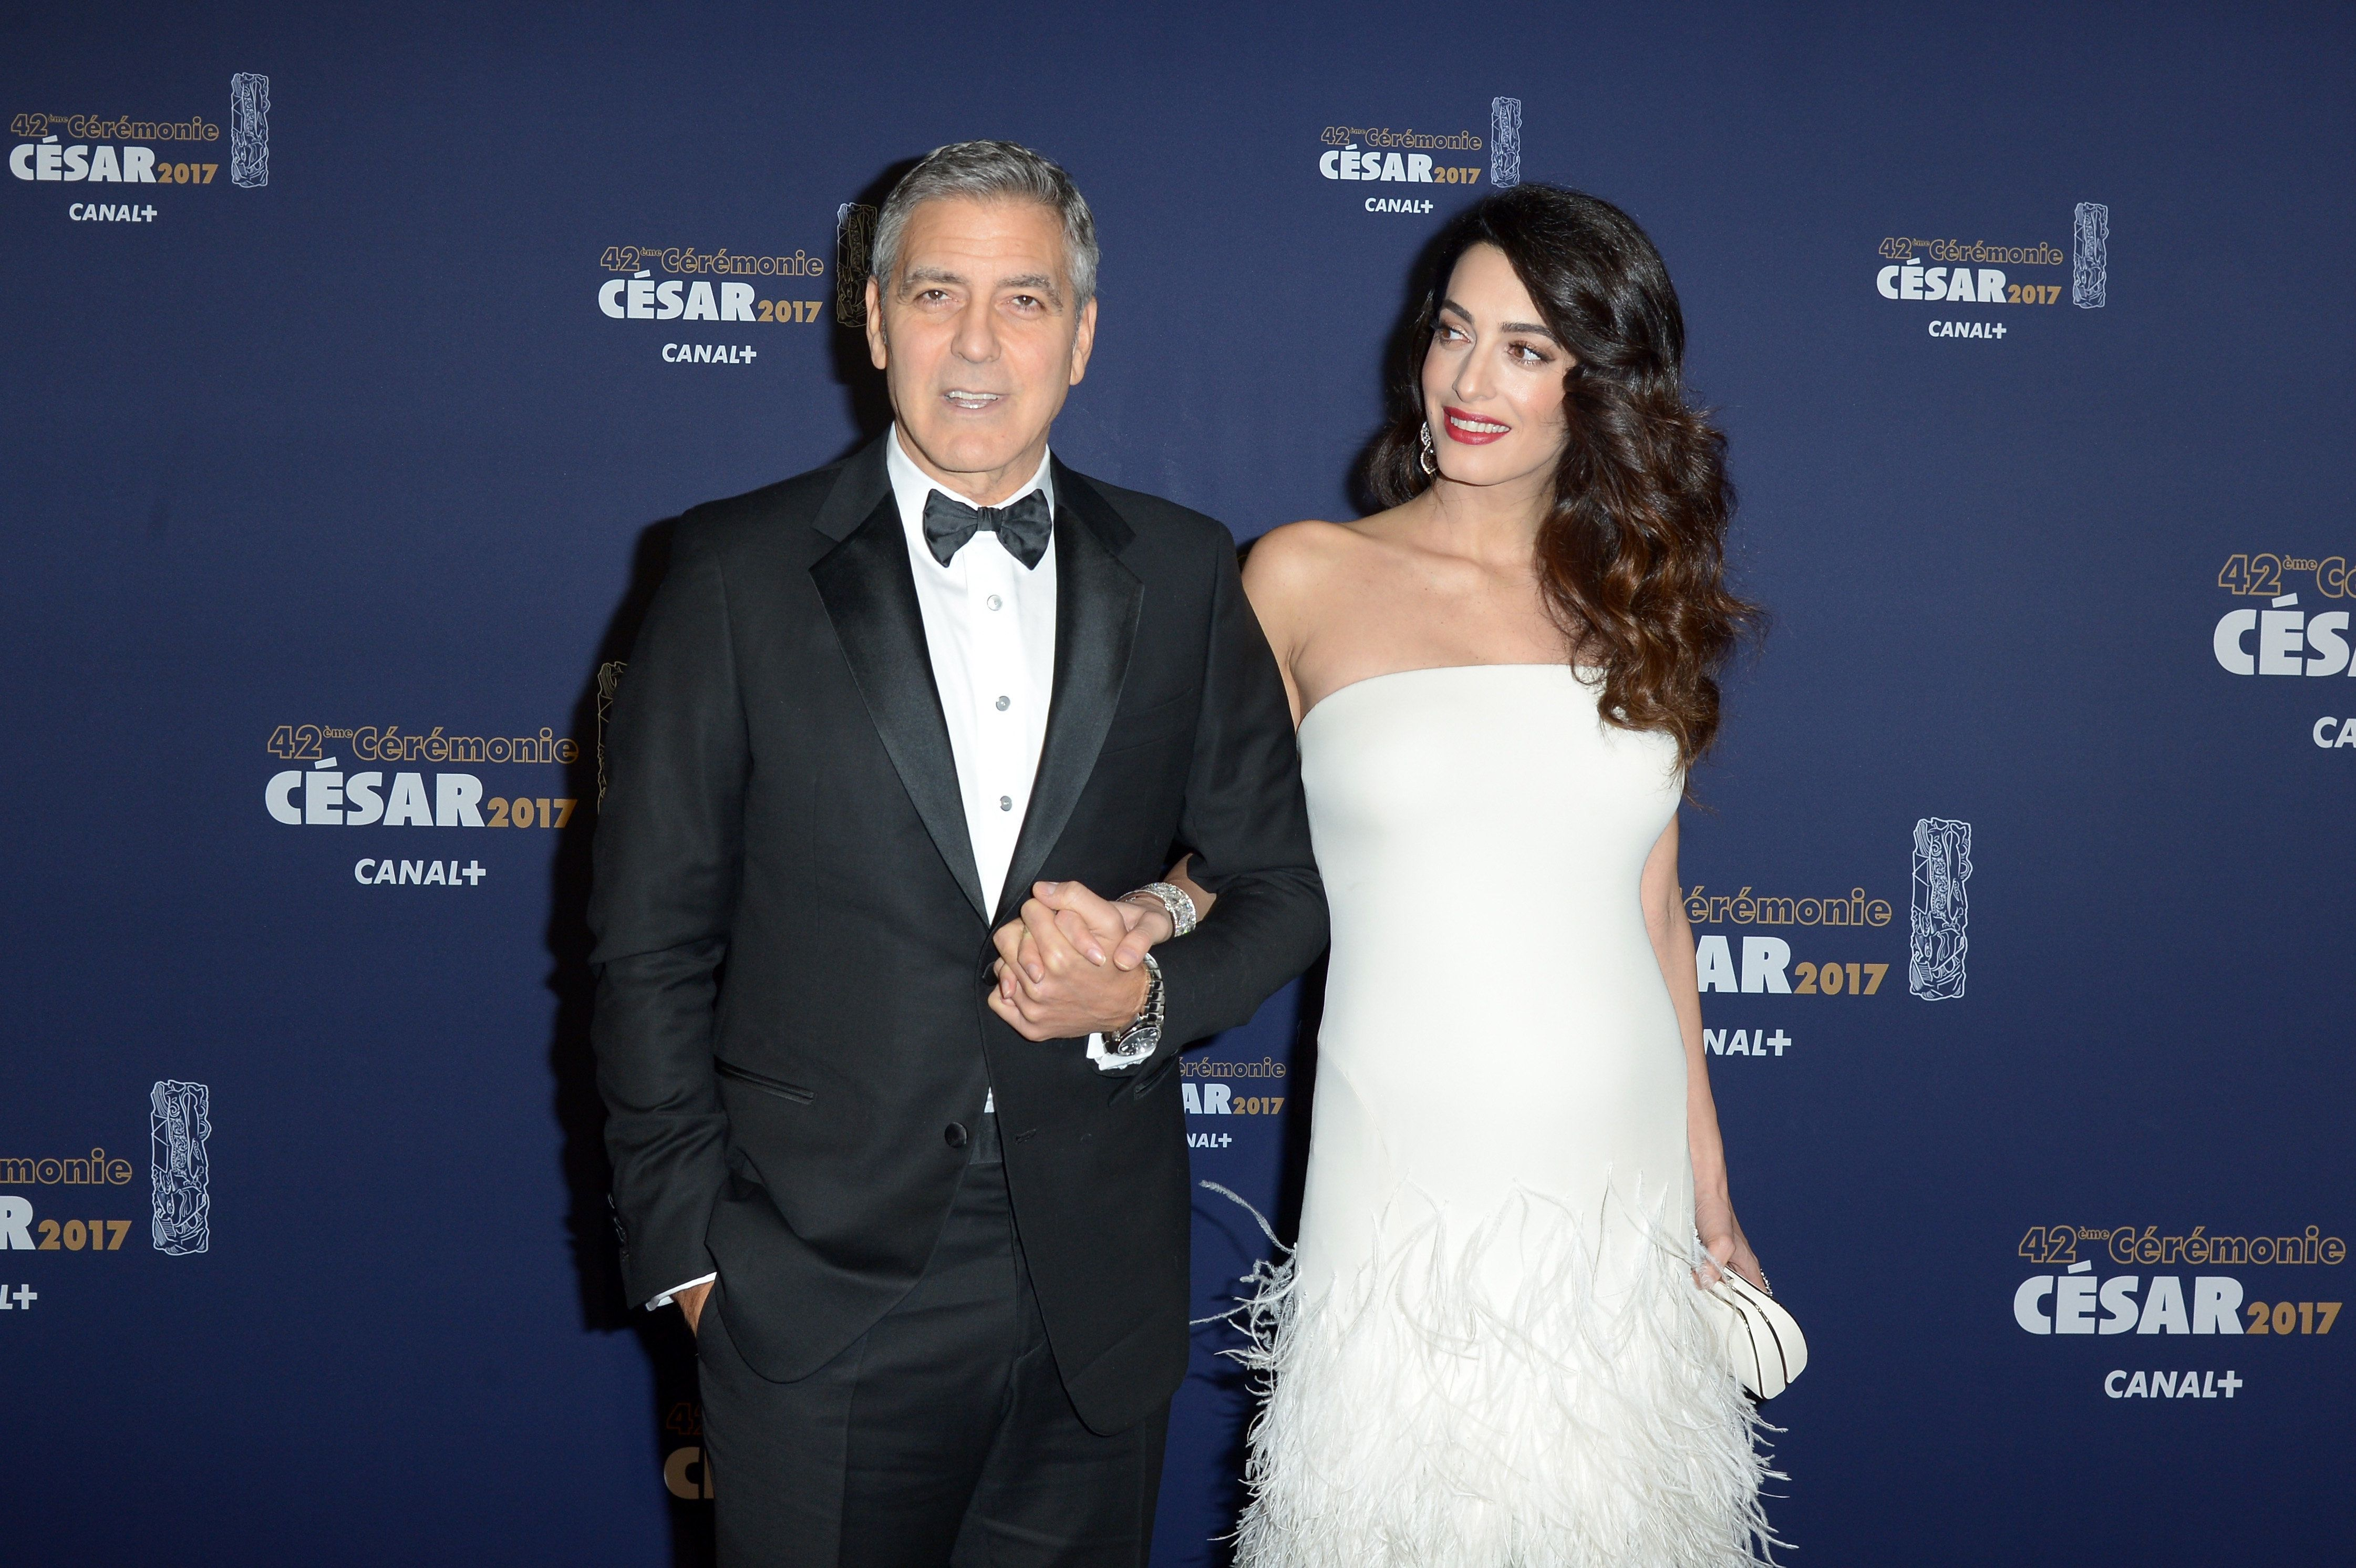 George and Amal Clooney are expecting twins.